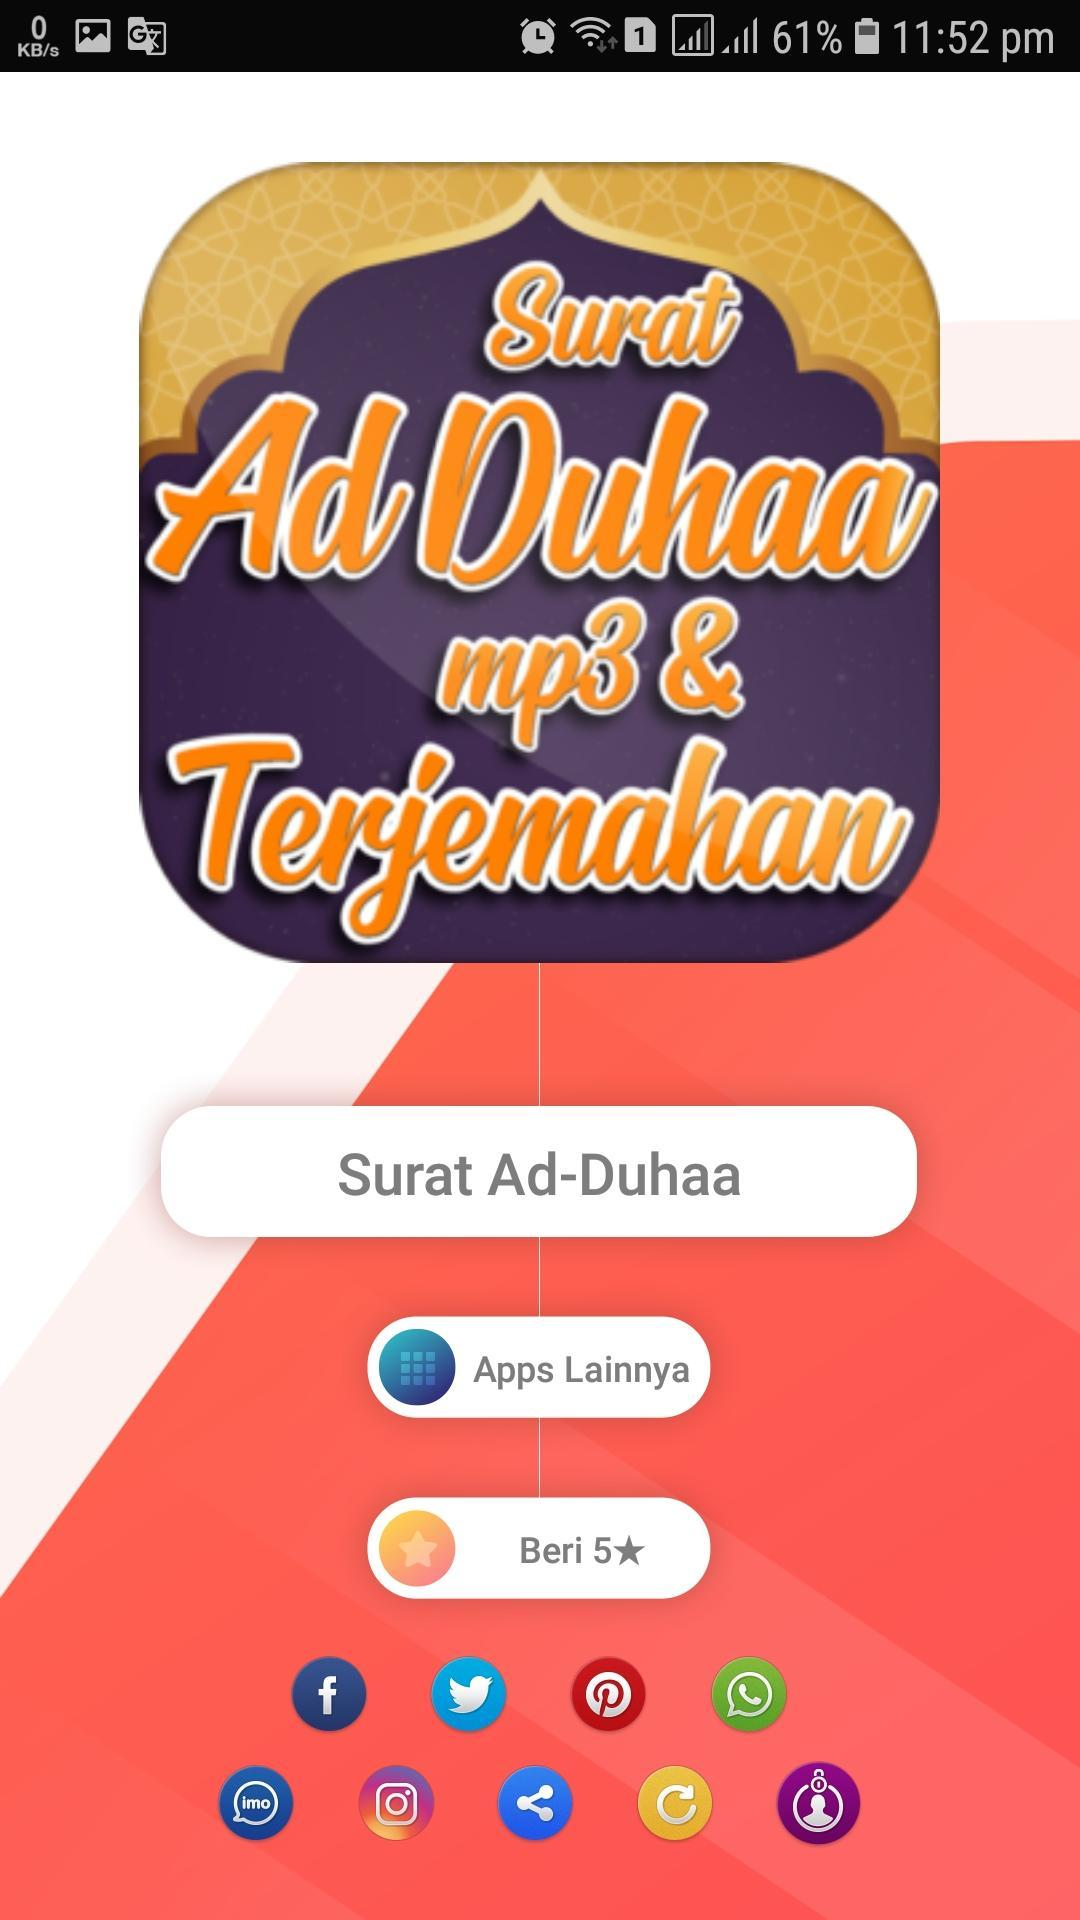 Surat Ad Dhuha Mp3 Dan Terjemahan For Android Apk Download